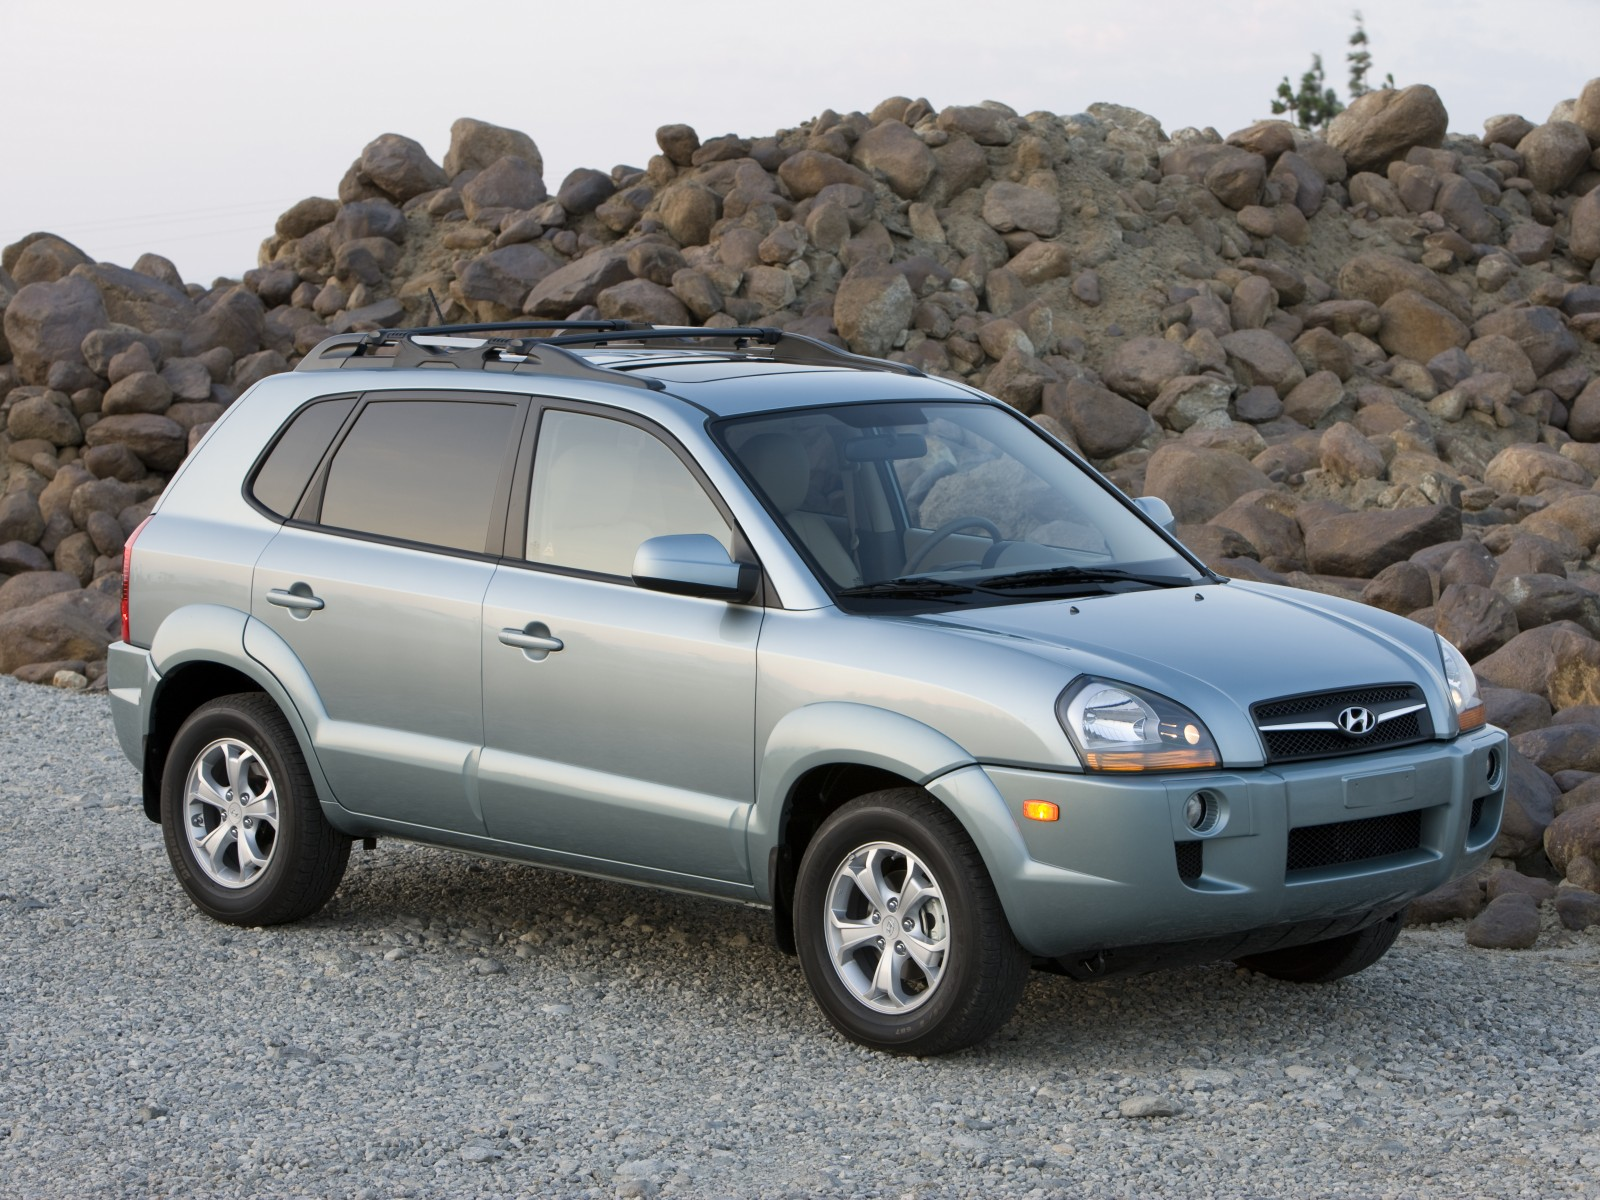 2009 Hyundai Tucson Ii Pictures Information And Specs